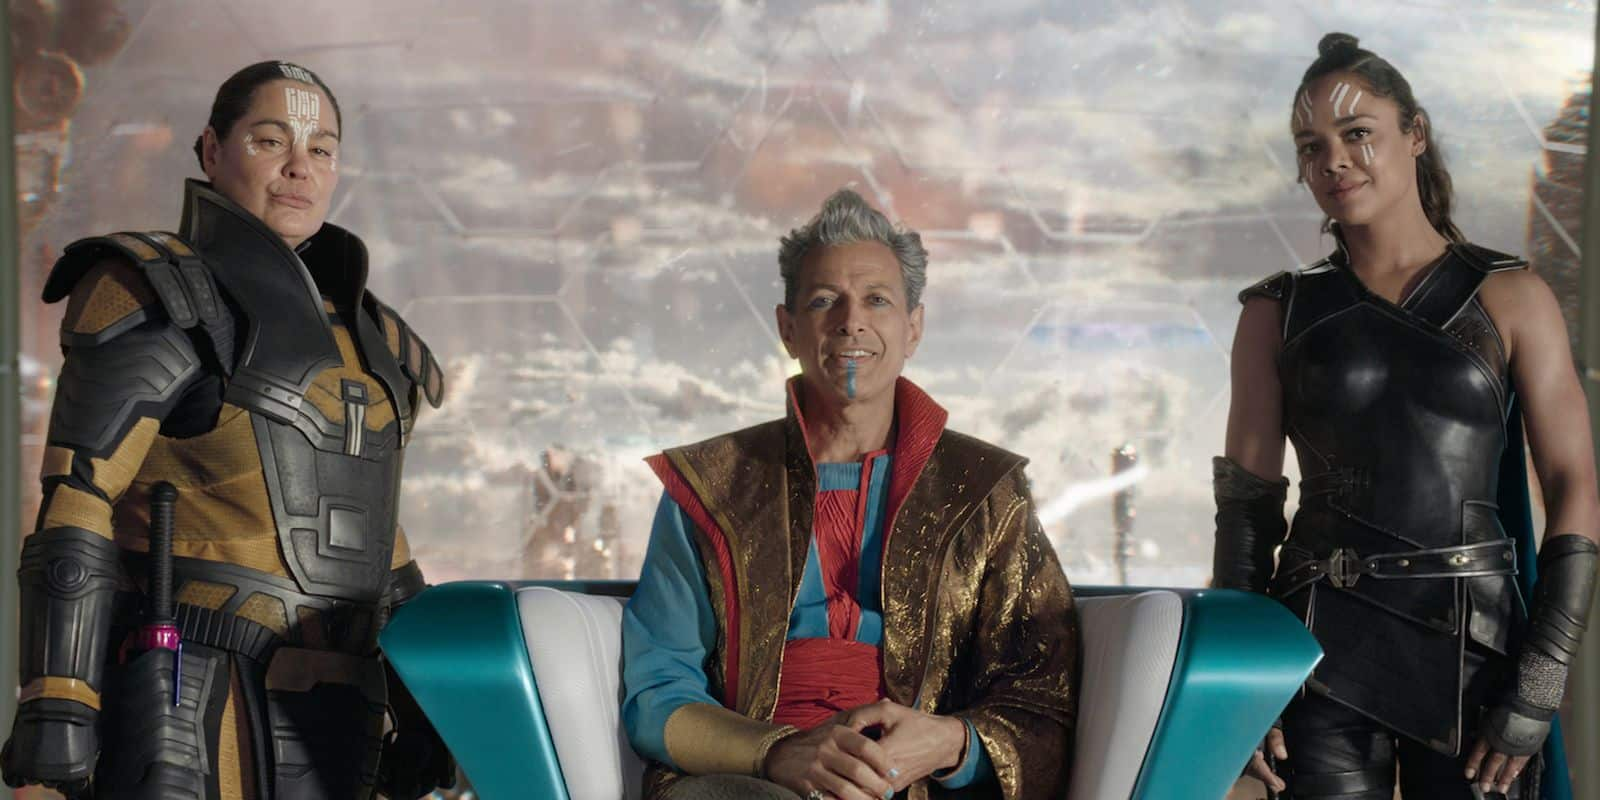 Topaz, Grandmaster, and Valkyrie look at the recently captured Thor